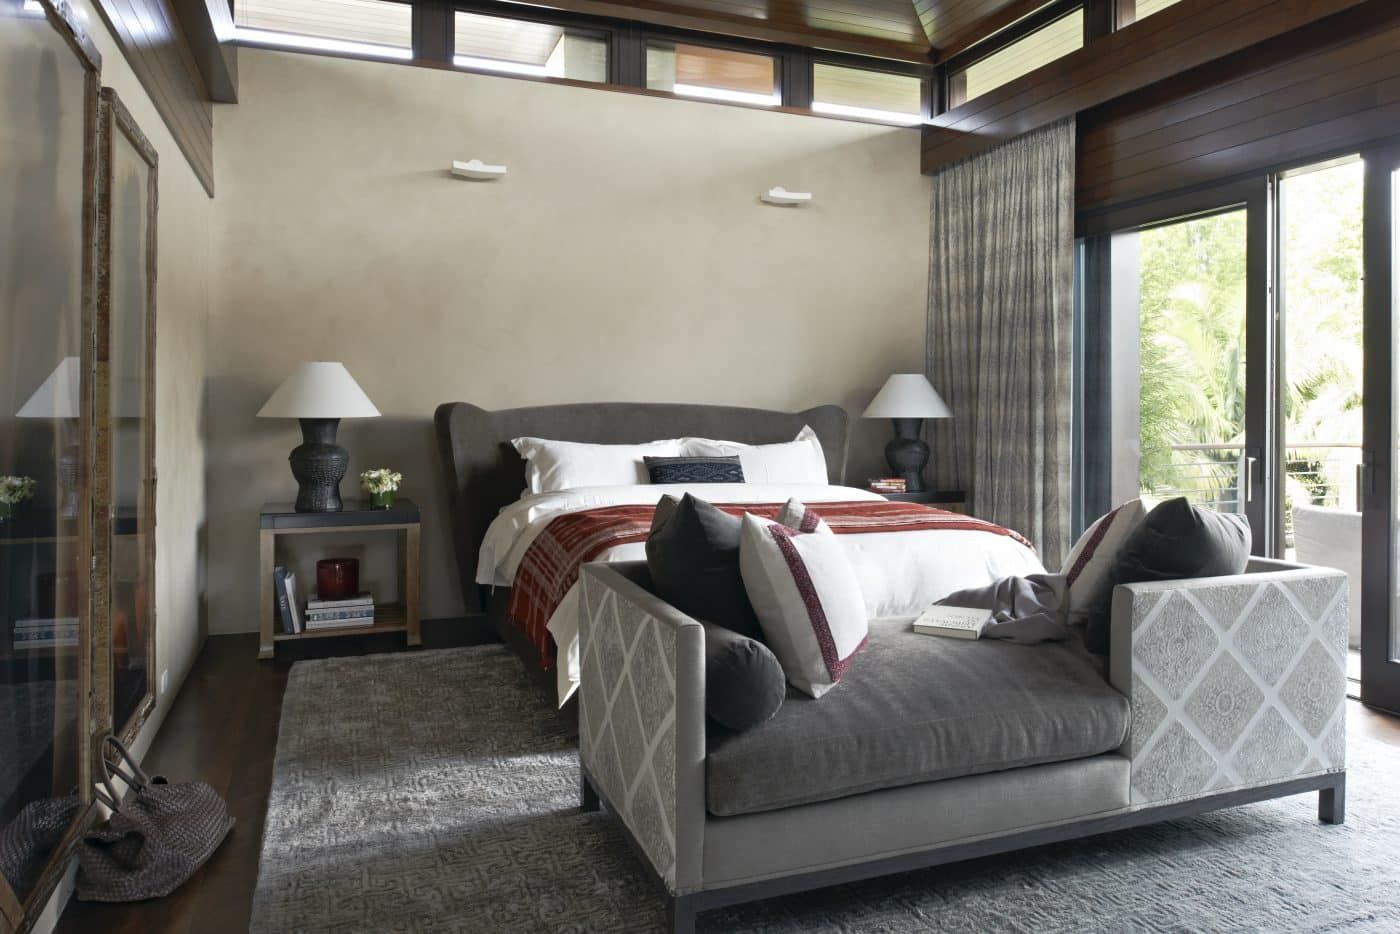 Pacific Palisades bedroom, interior designed by Coulter